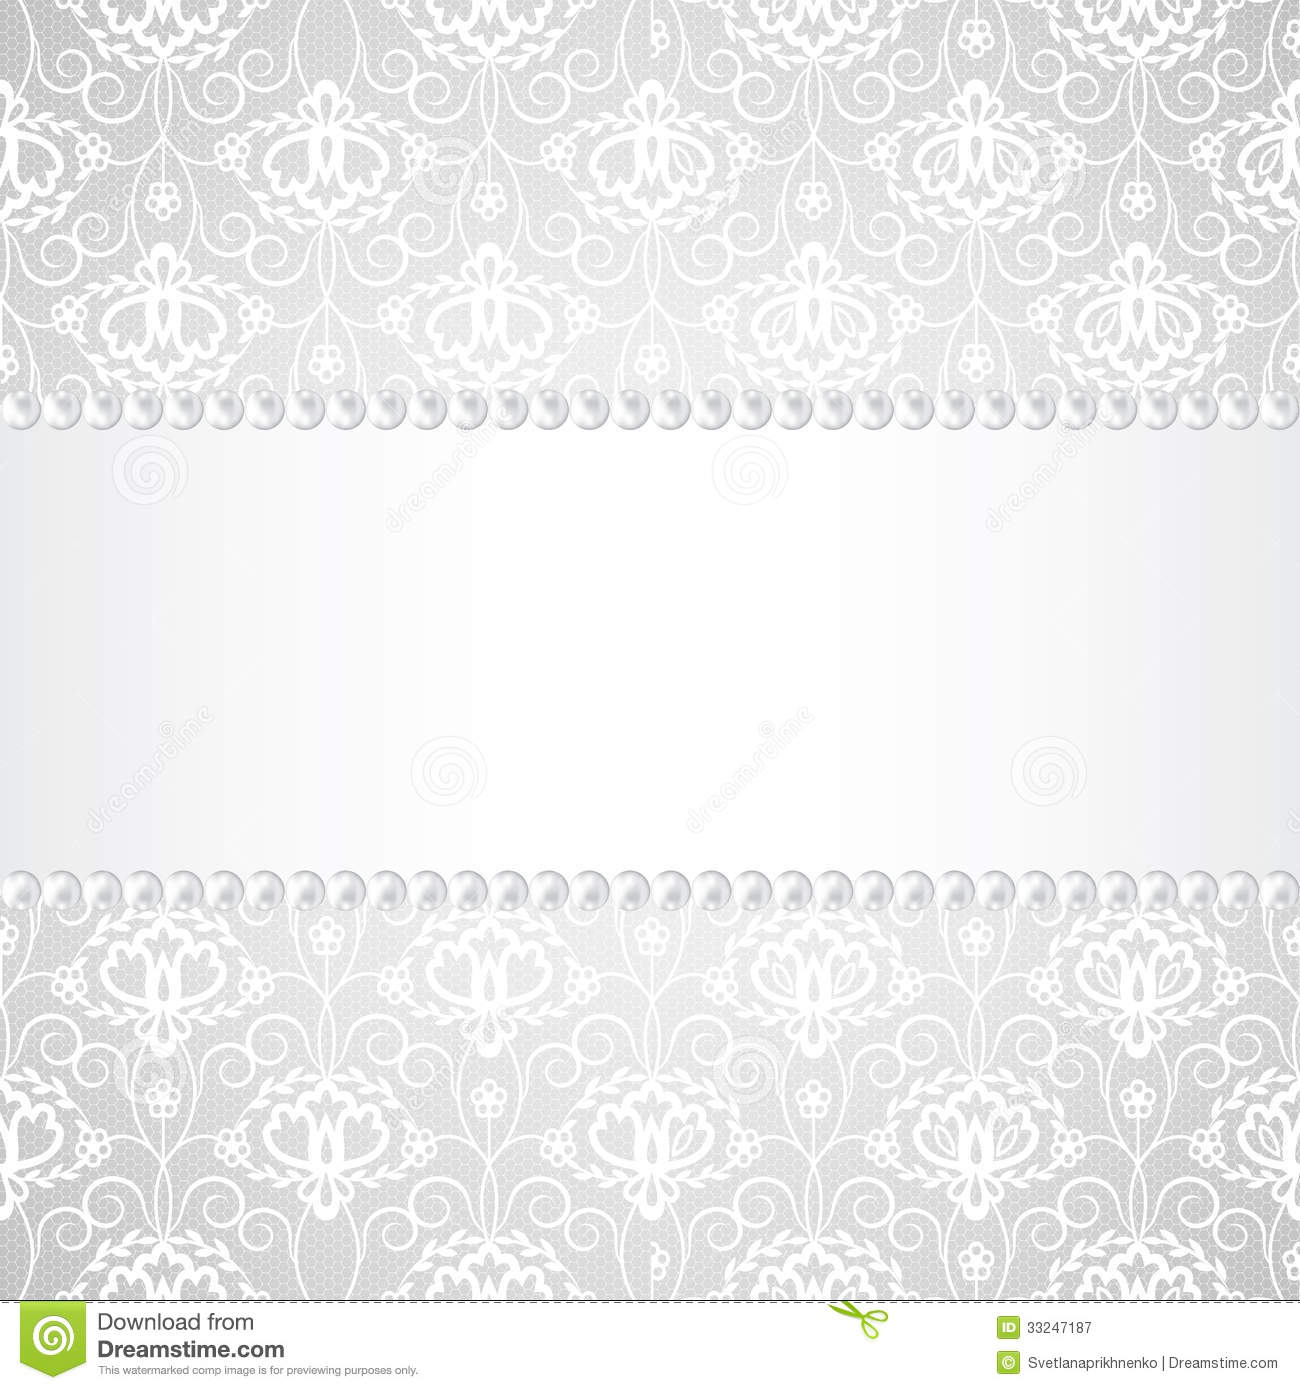 Lace Templates wedding background templates lace wedding – Lace for Wedding Invitations